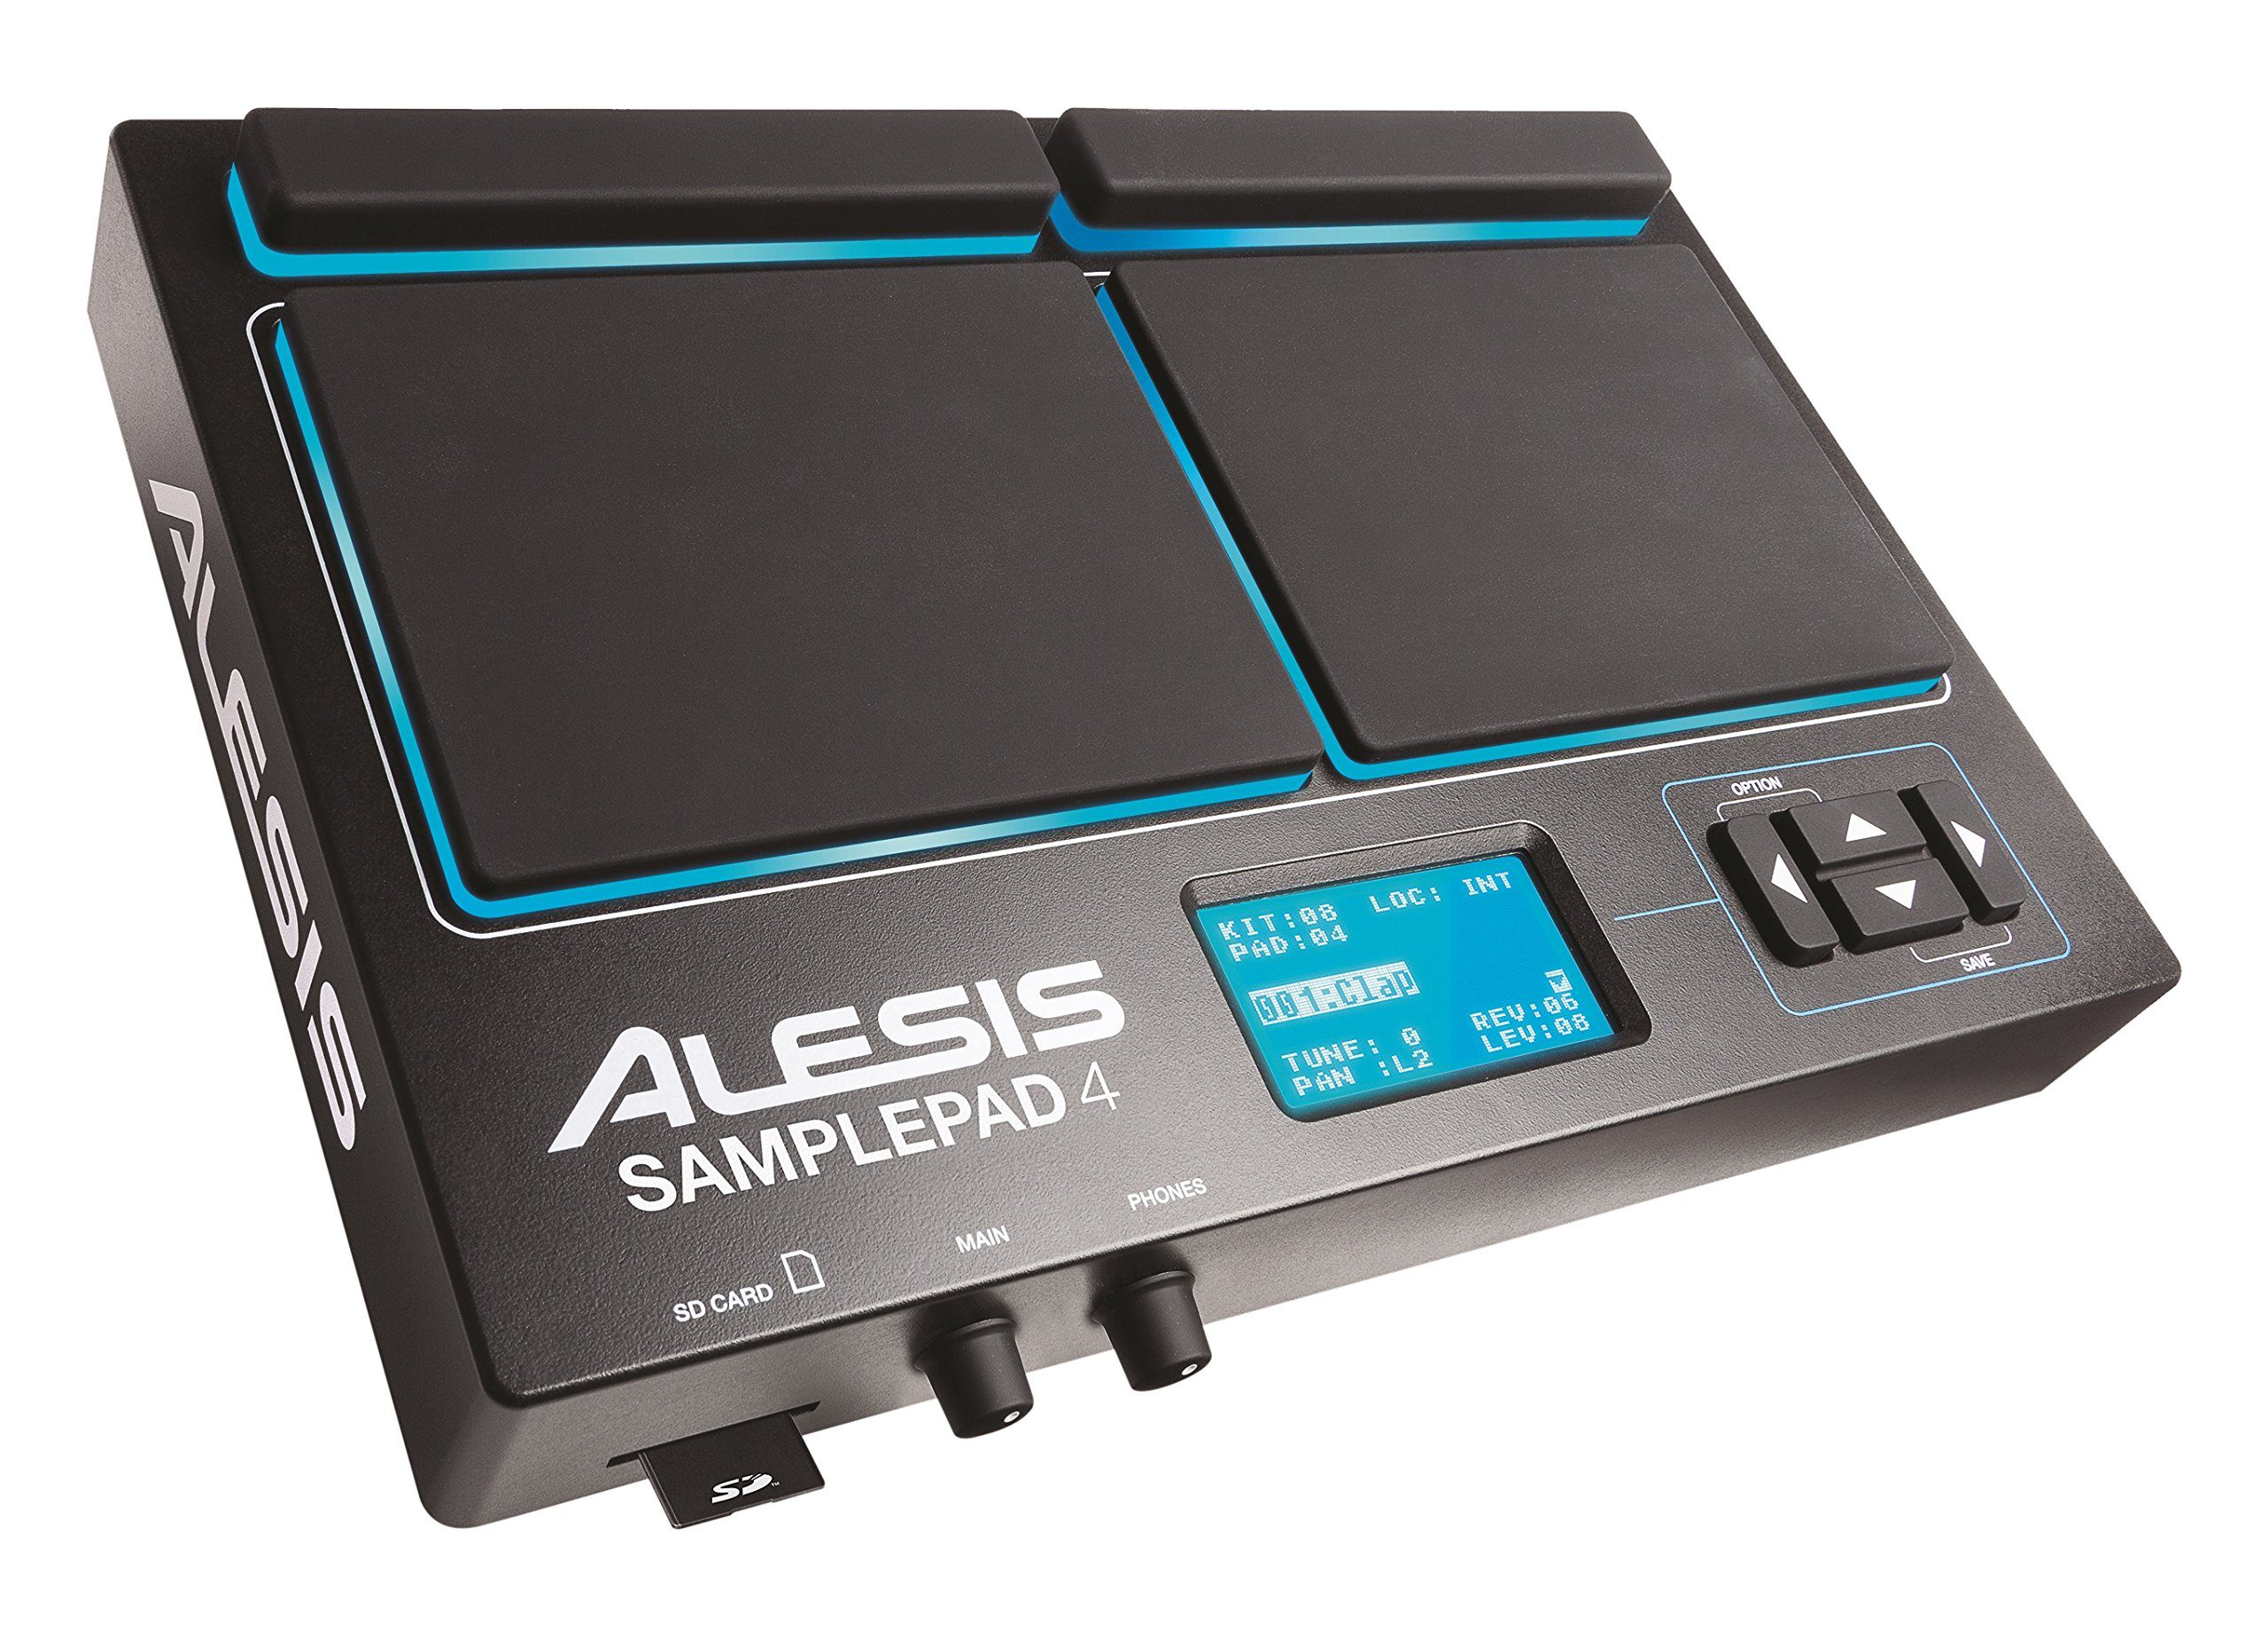 Alesis Sample Pad 4 | Compact 4-Pad Percussion and Sample Triggering Instrument by Alesis